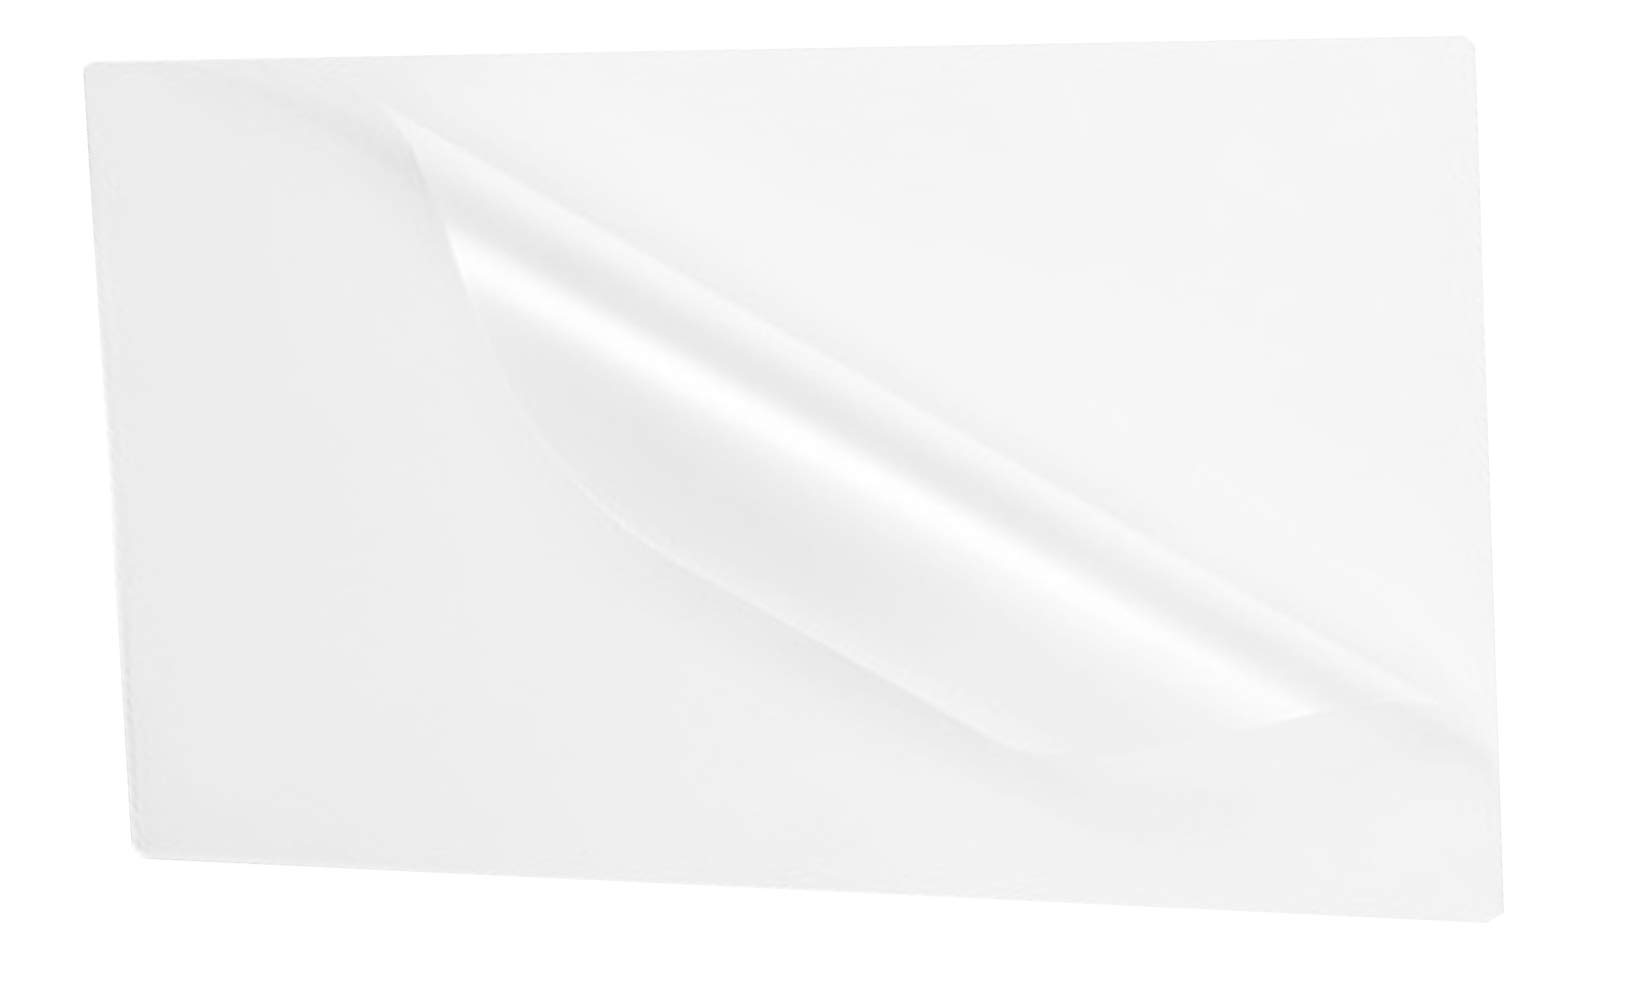 Qty 200 5 Mil Double Letter Laminating Pouches 11-1/2 x 17-1/2 Hot Laminator Sleeves by Oregon Lamination Premium